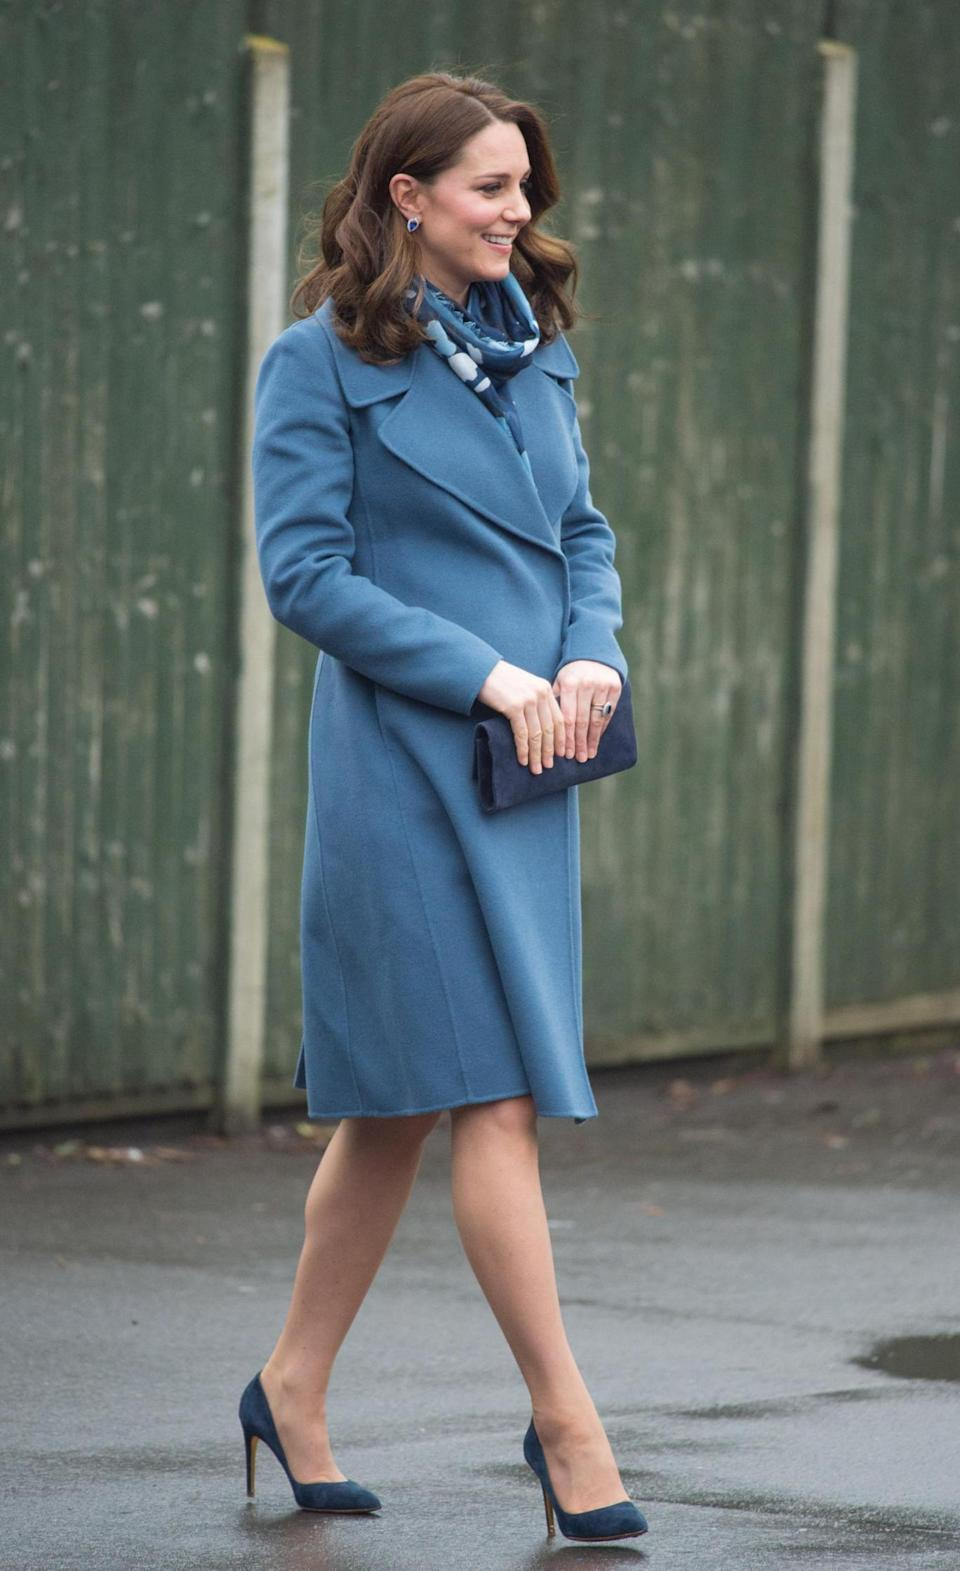 The Duchess of Cambridge suffered severe morning sickness during her first pregnancy (Splash News)